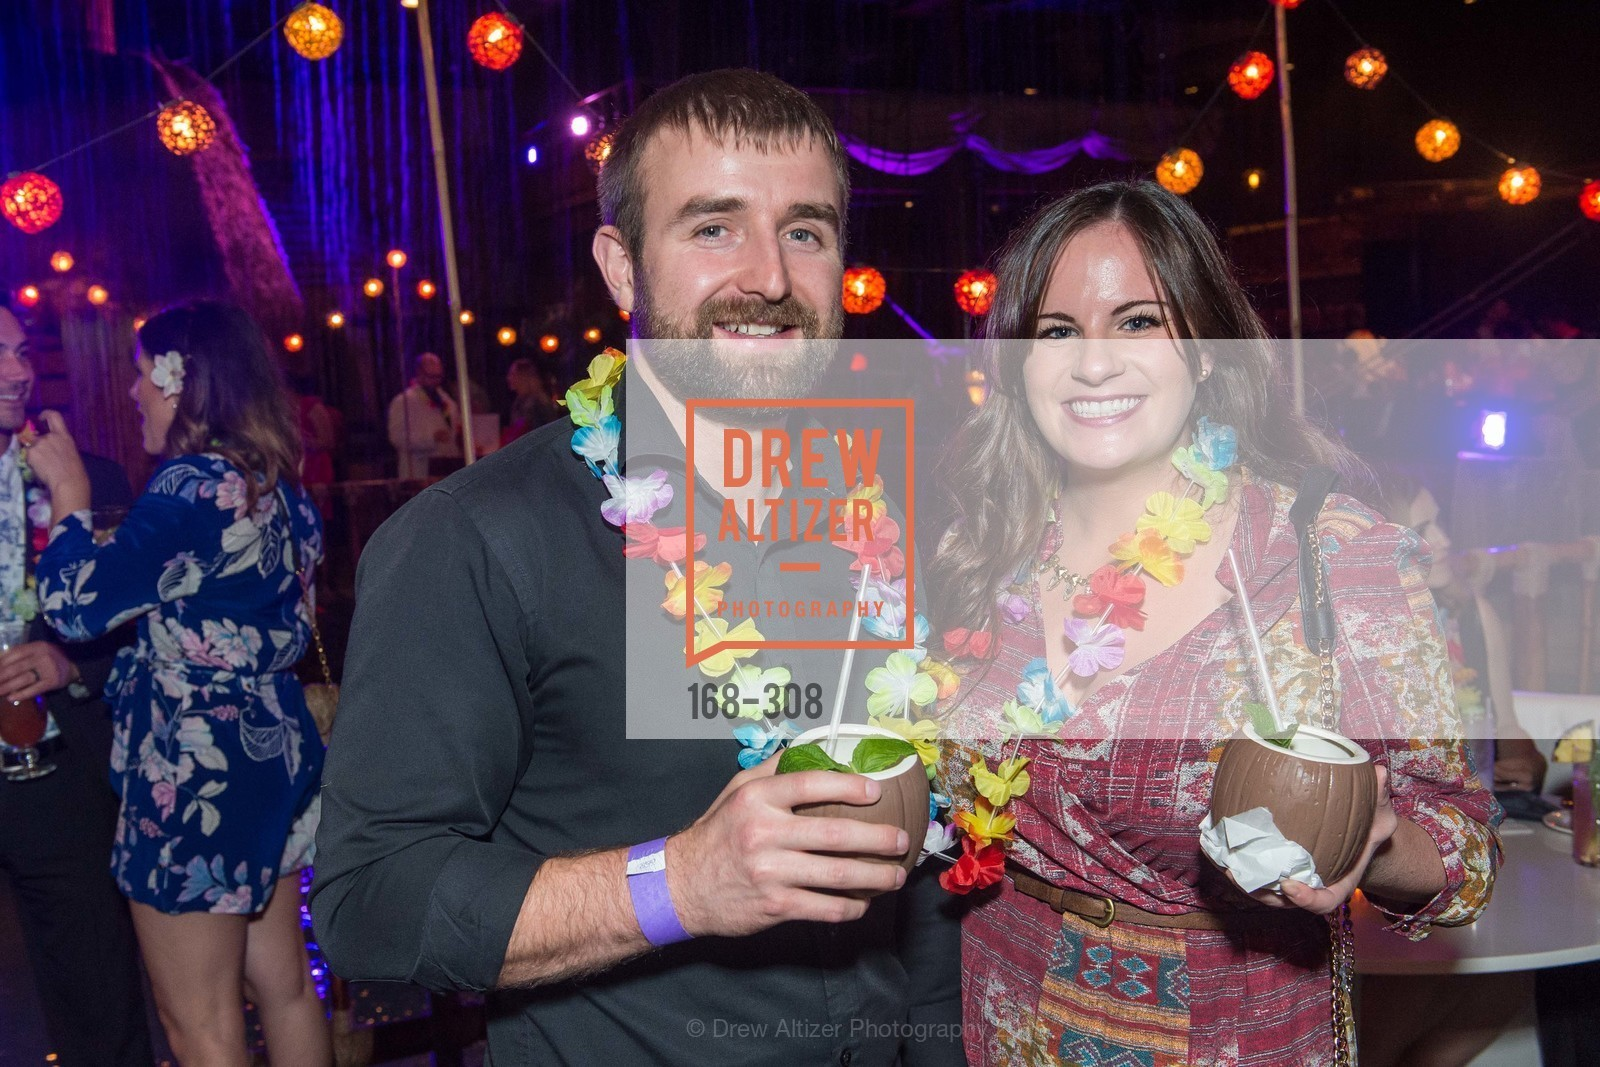 Luke Walden, Tonga Room & Hurricane Bar Celebrates 70 Years of Tiki Glory, Fairmont, September 23rd, 2015,Drew Altizer, Drew Altizer Photography, full-service agency, private events, San Francisco photographer, photographer california